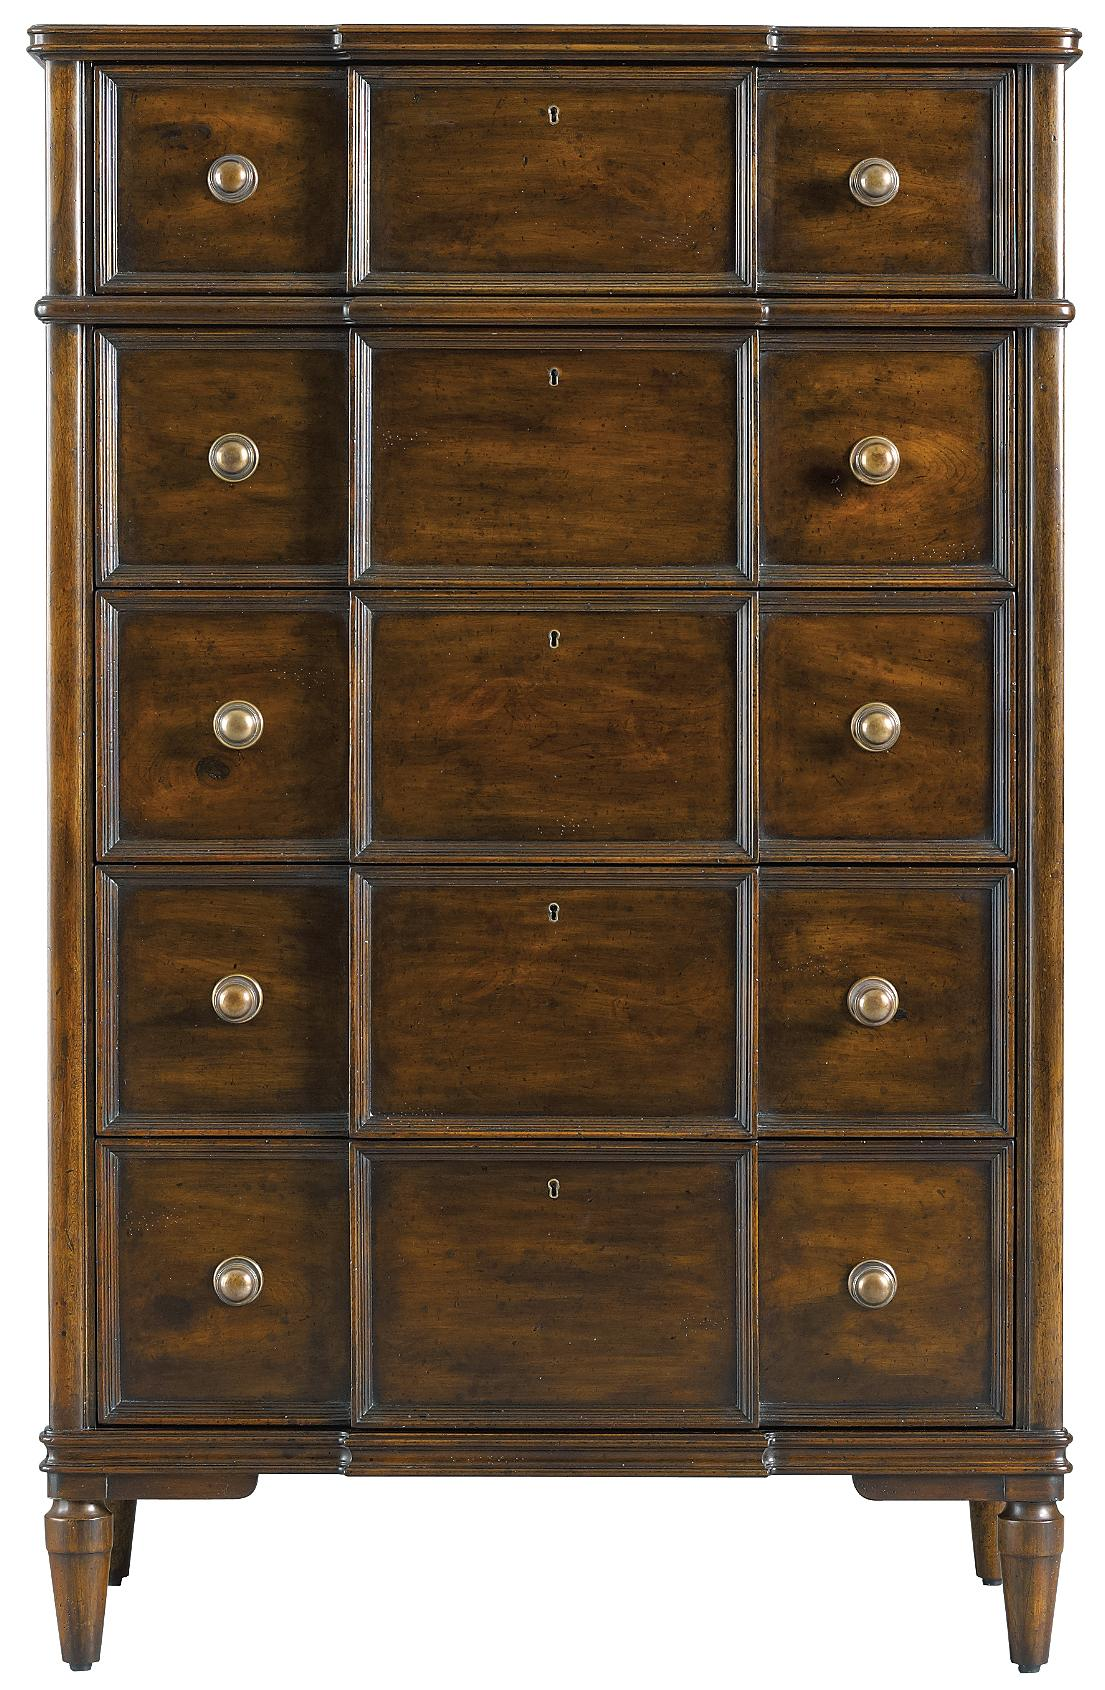 Stanley Furniture The Classic Portfolio - Vintage Drawer Chest - Item Number: 264-13-10